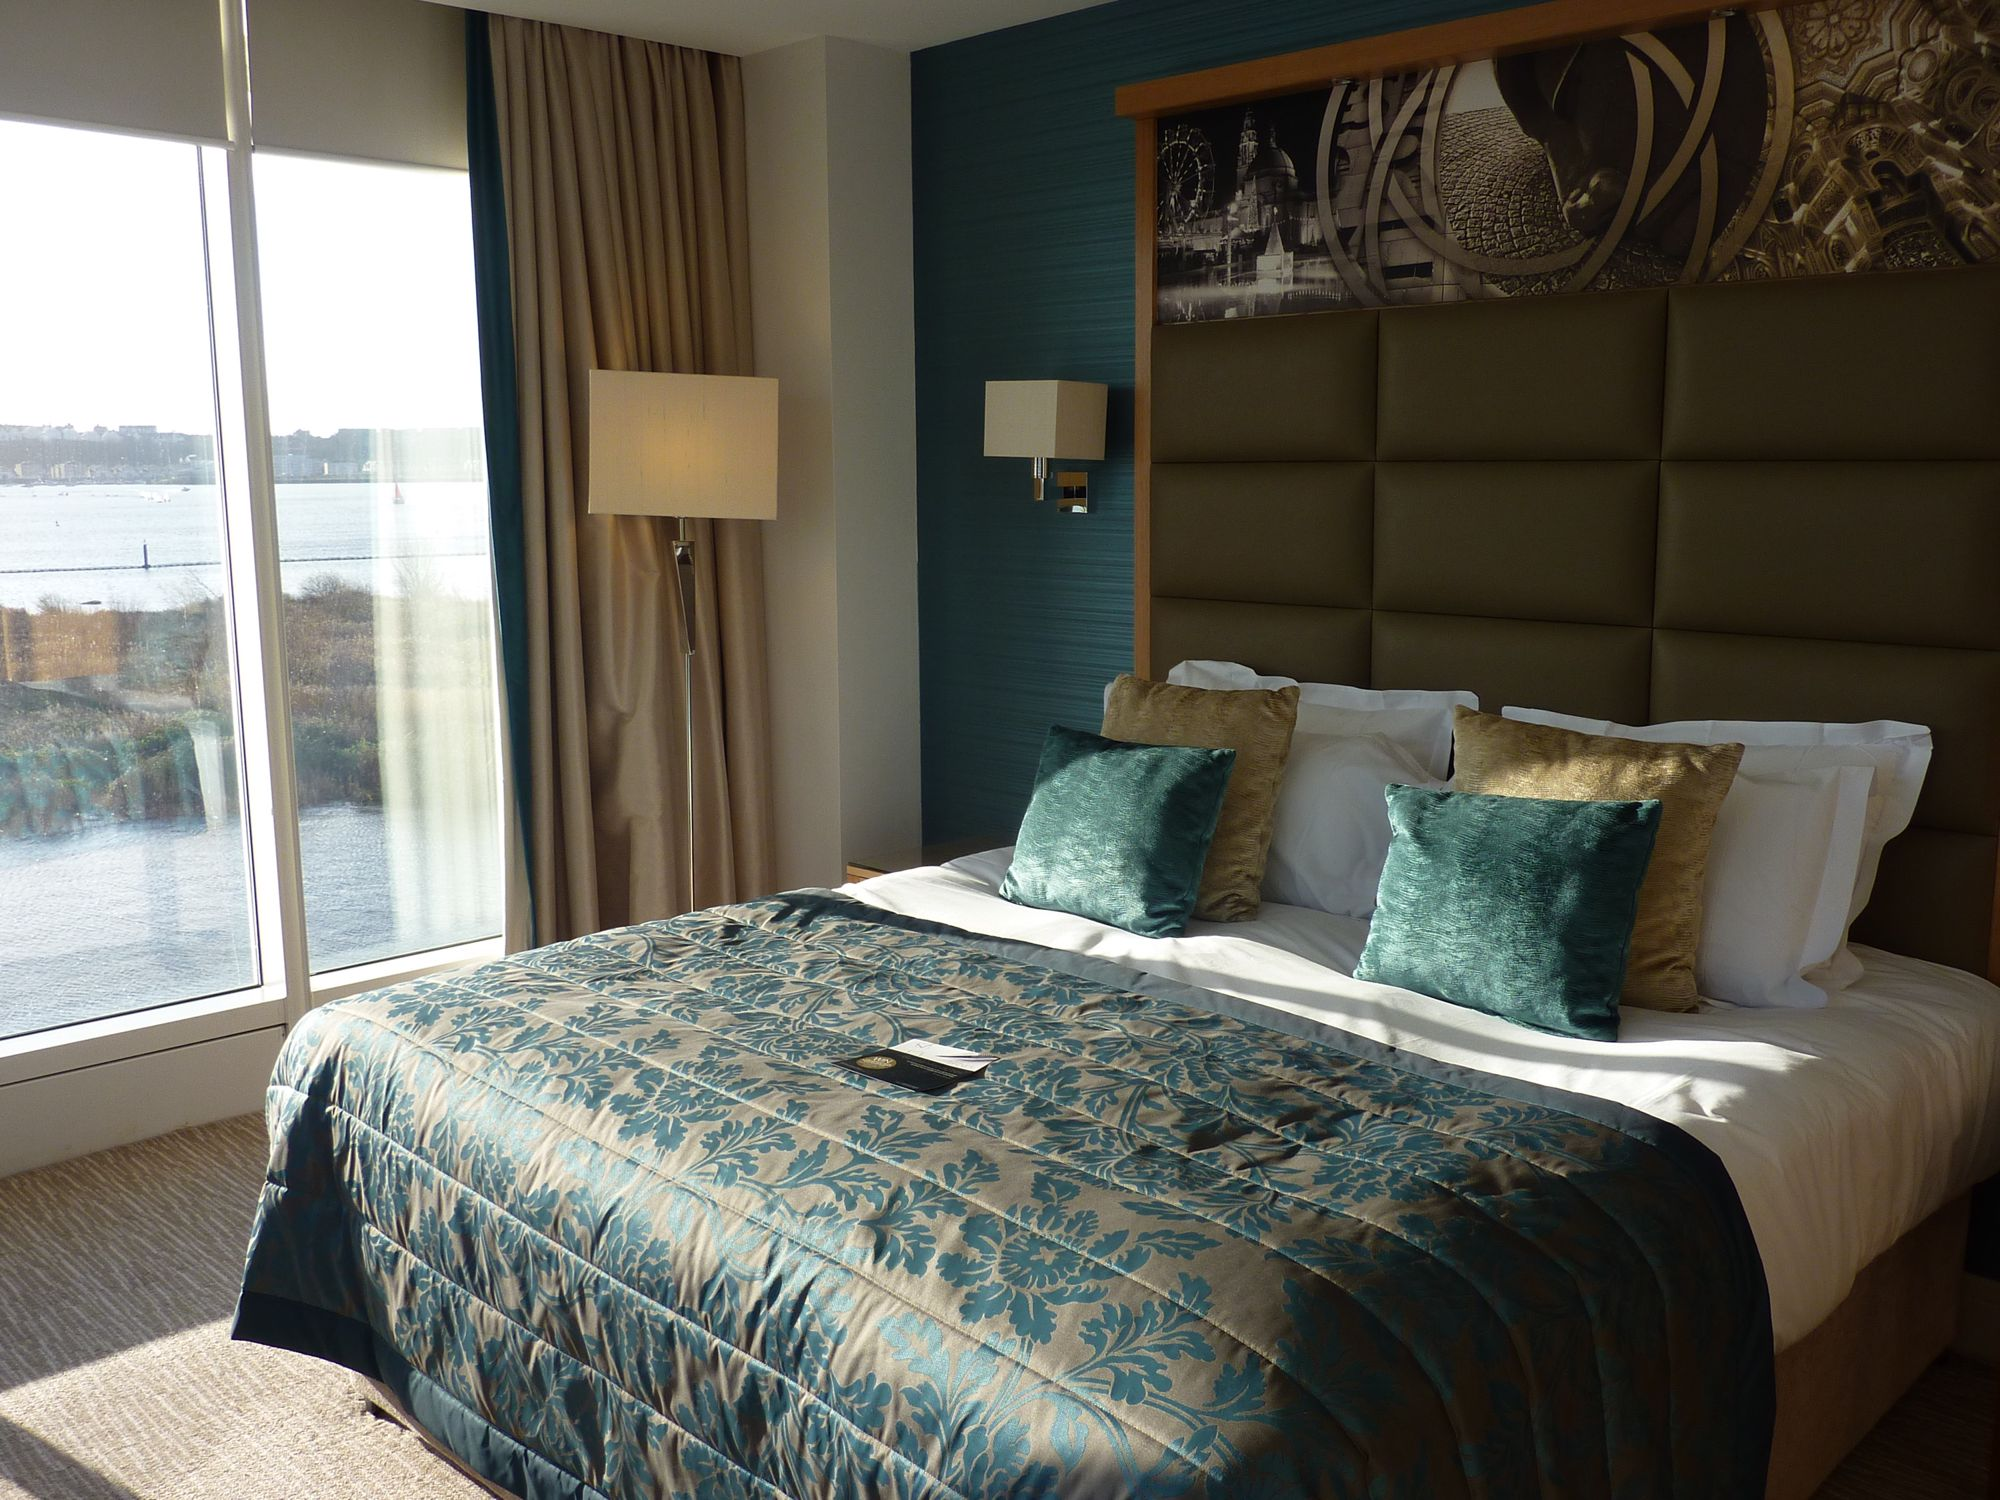 Hotels in Cardiff holidays at Cool Places